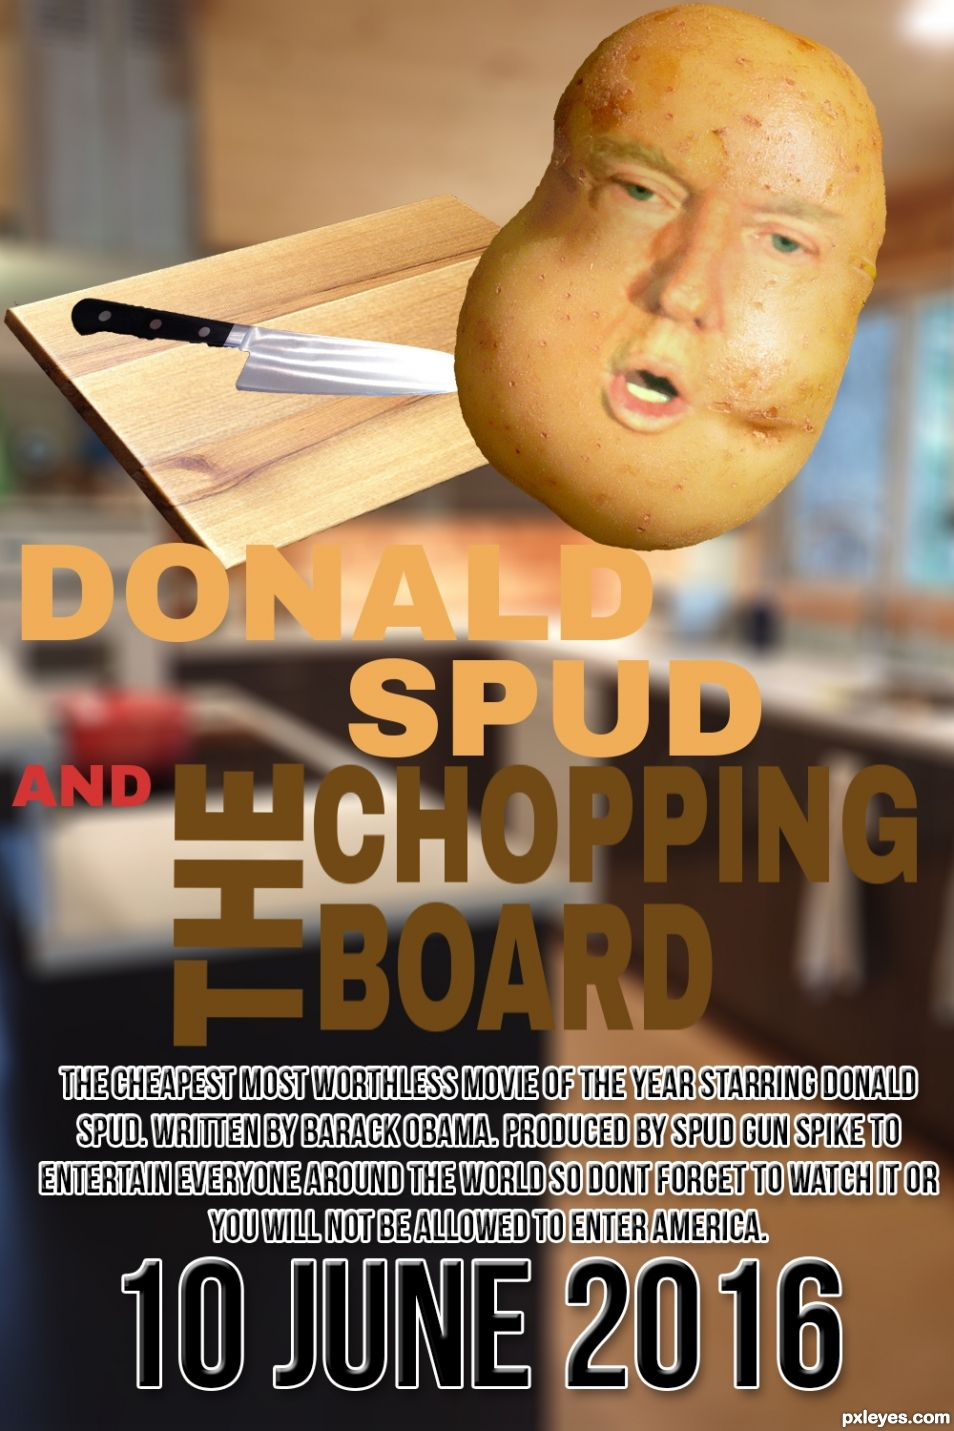 Donald Spud and The Chopping Board with updated sources